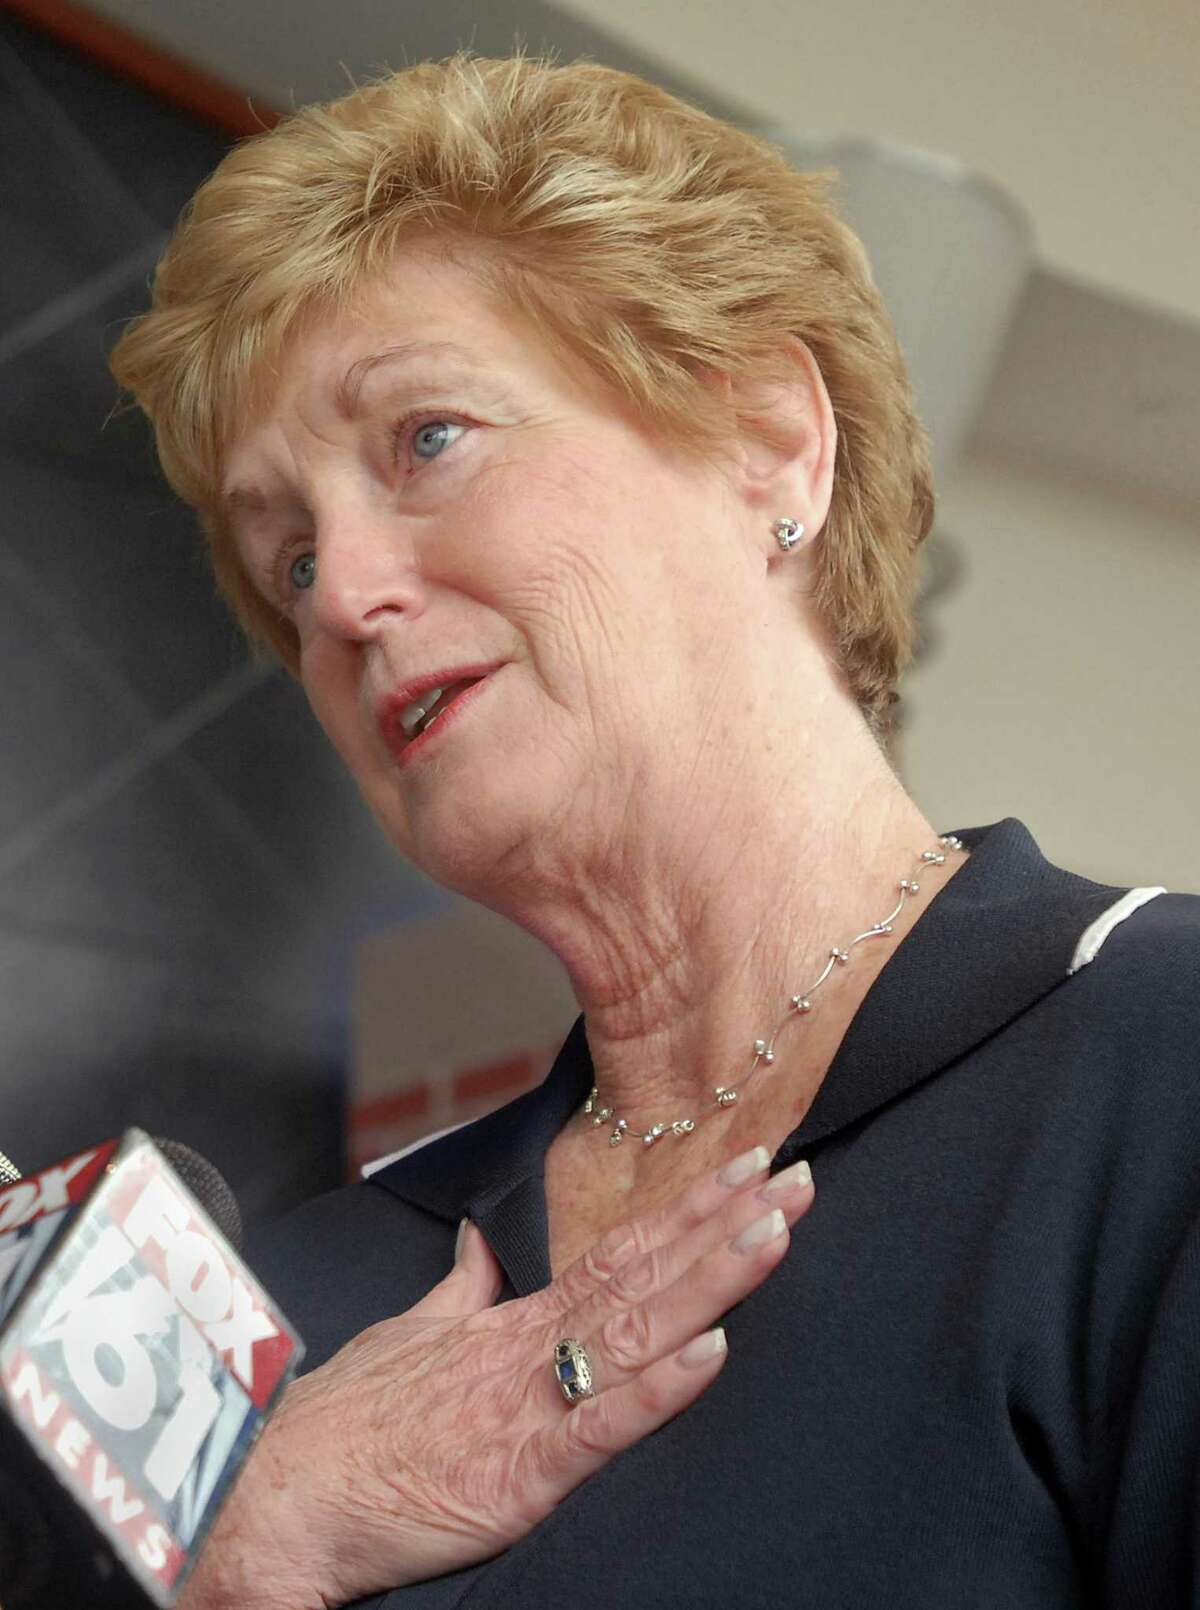 Former Gov. M. Jodi Rell, who oversaw the implementation of the state's clean elections laws, sits on the board of the Republican State Leadership Committee, which has poured an unprecedented amount of money - $800,000 - into Connecticut legislative races.